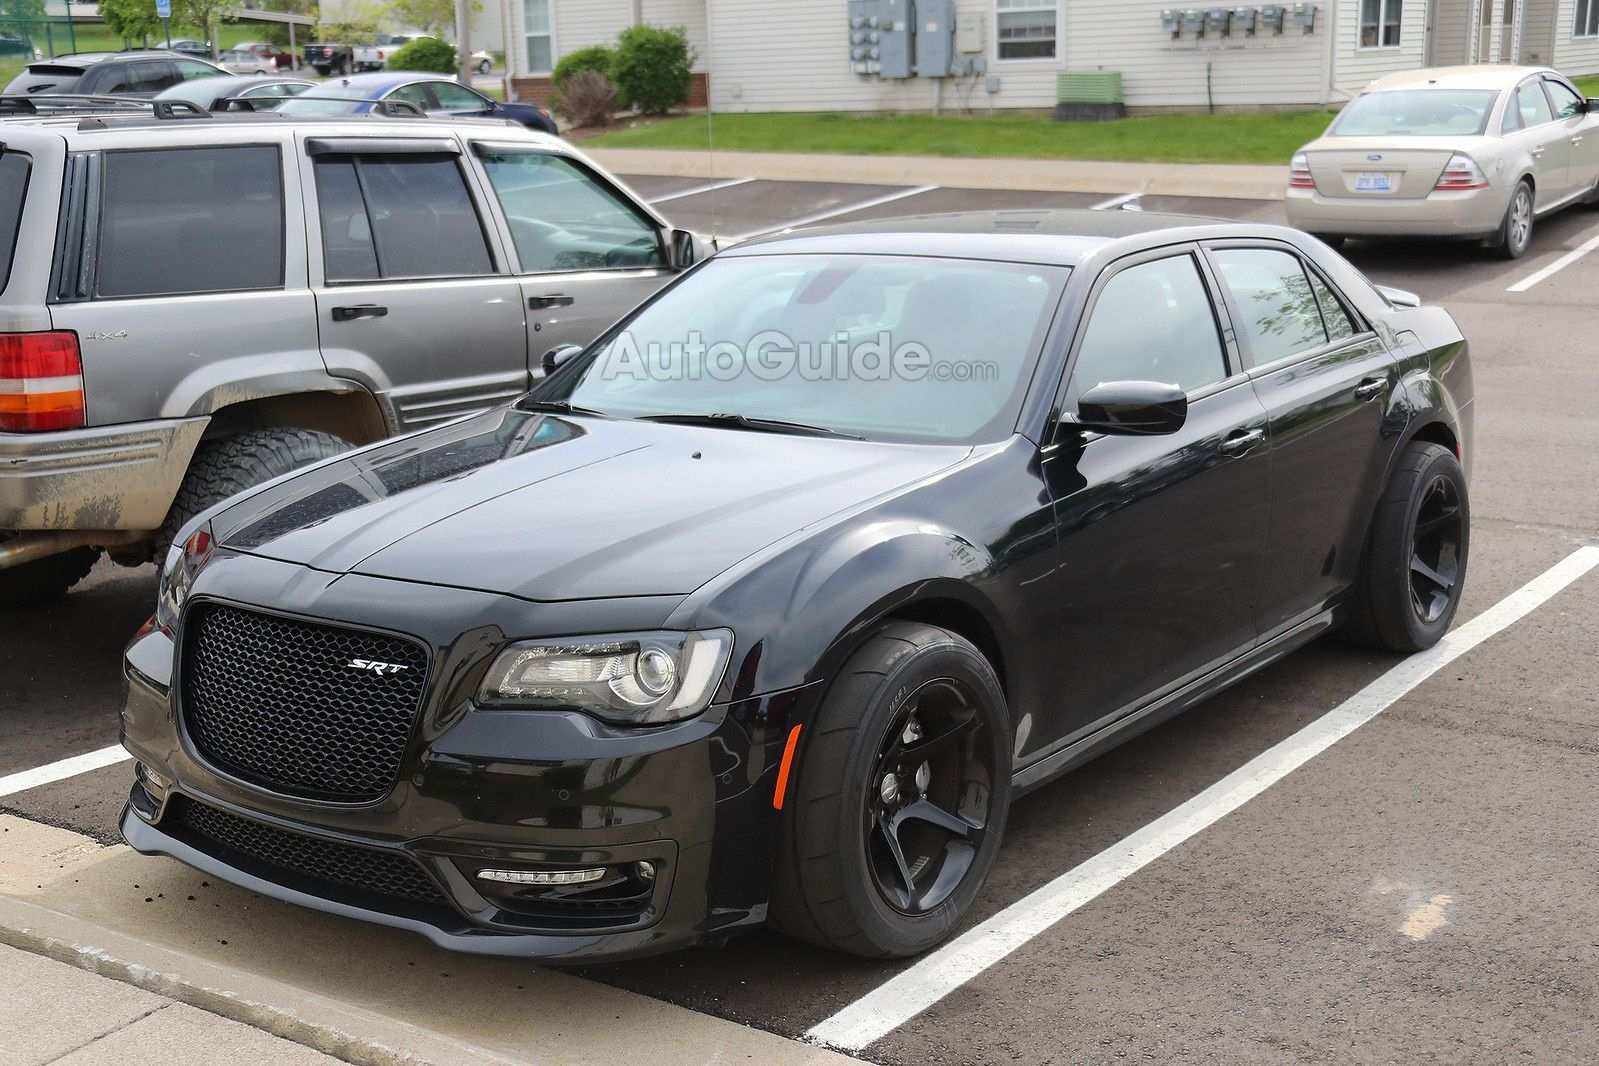 72 Great 2020 Chrysler 300 Srt 8 Prices by 2020 Chrysler 300 Srt 8